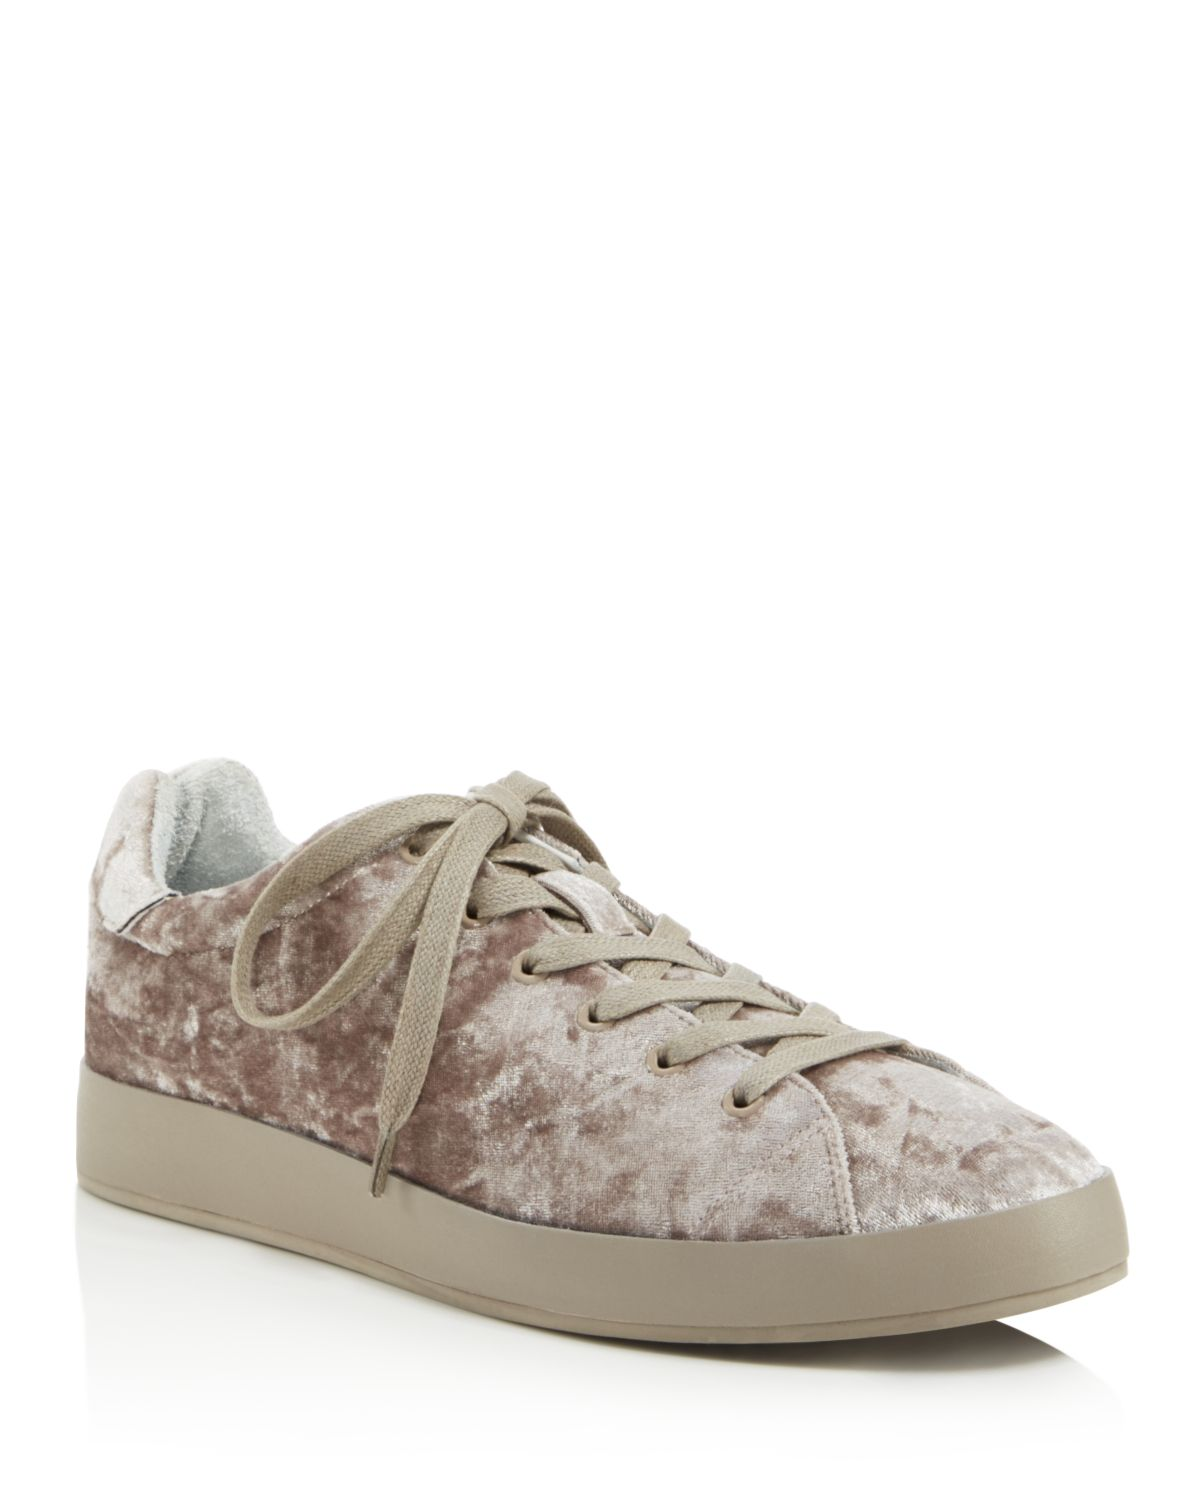 RAG&BONE Women's Crushed Velvet Soporte Sneakers